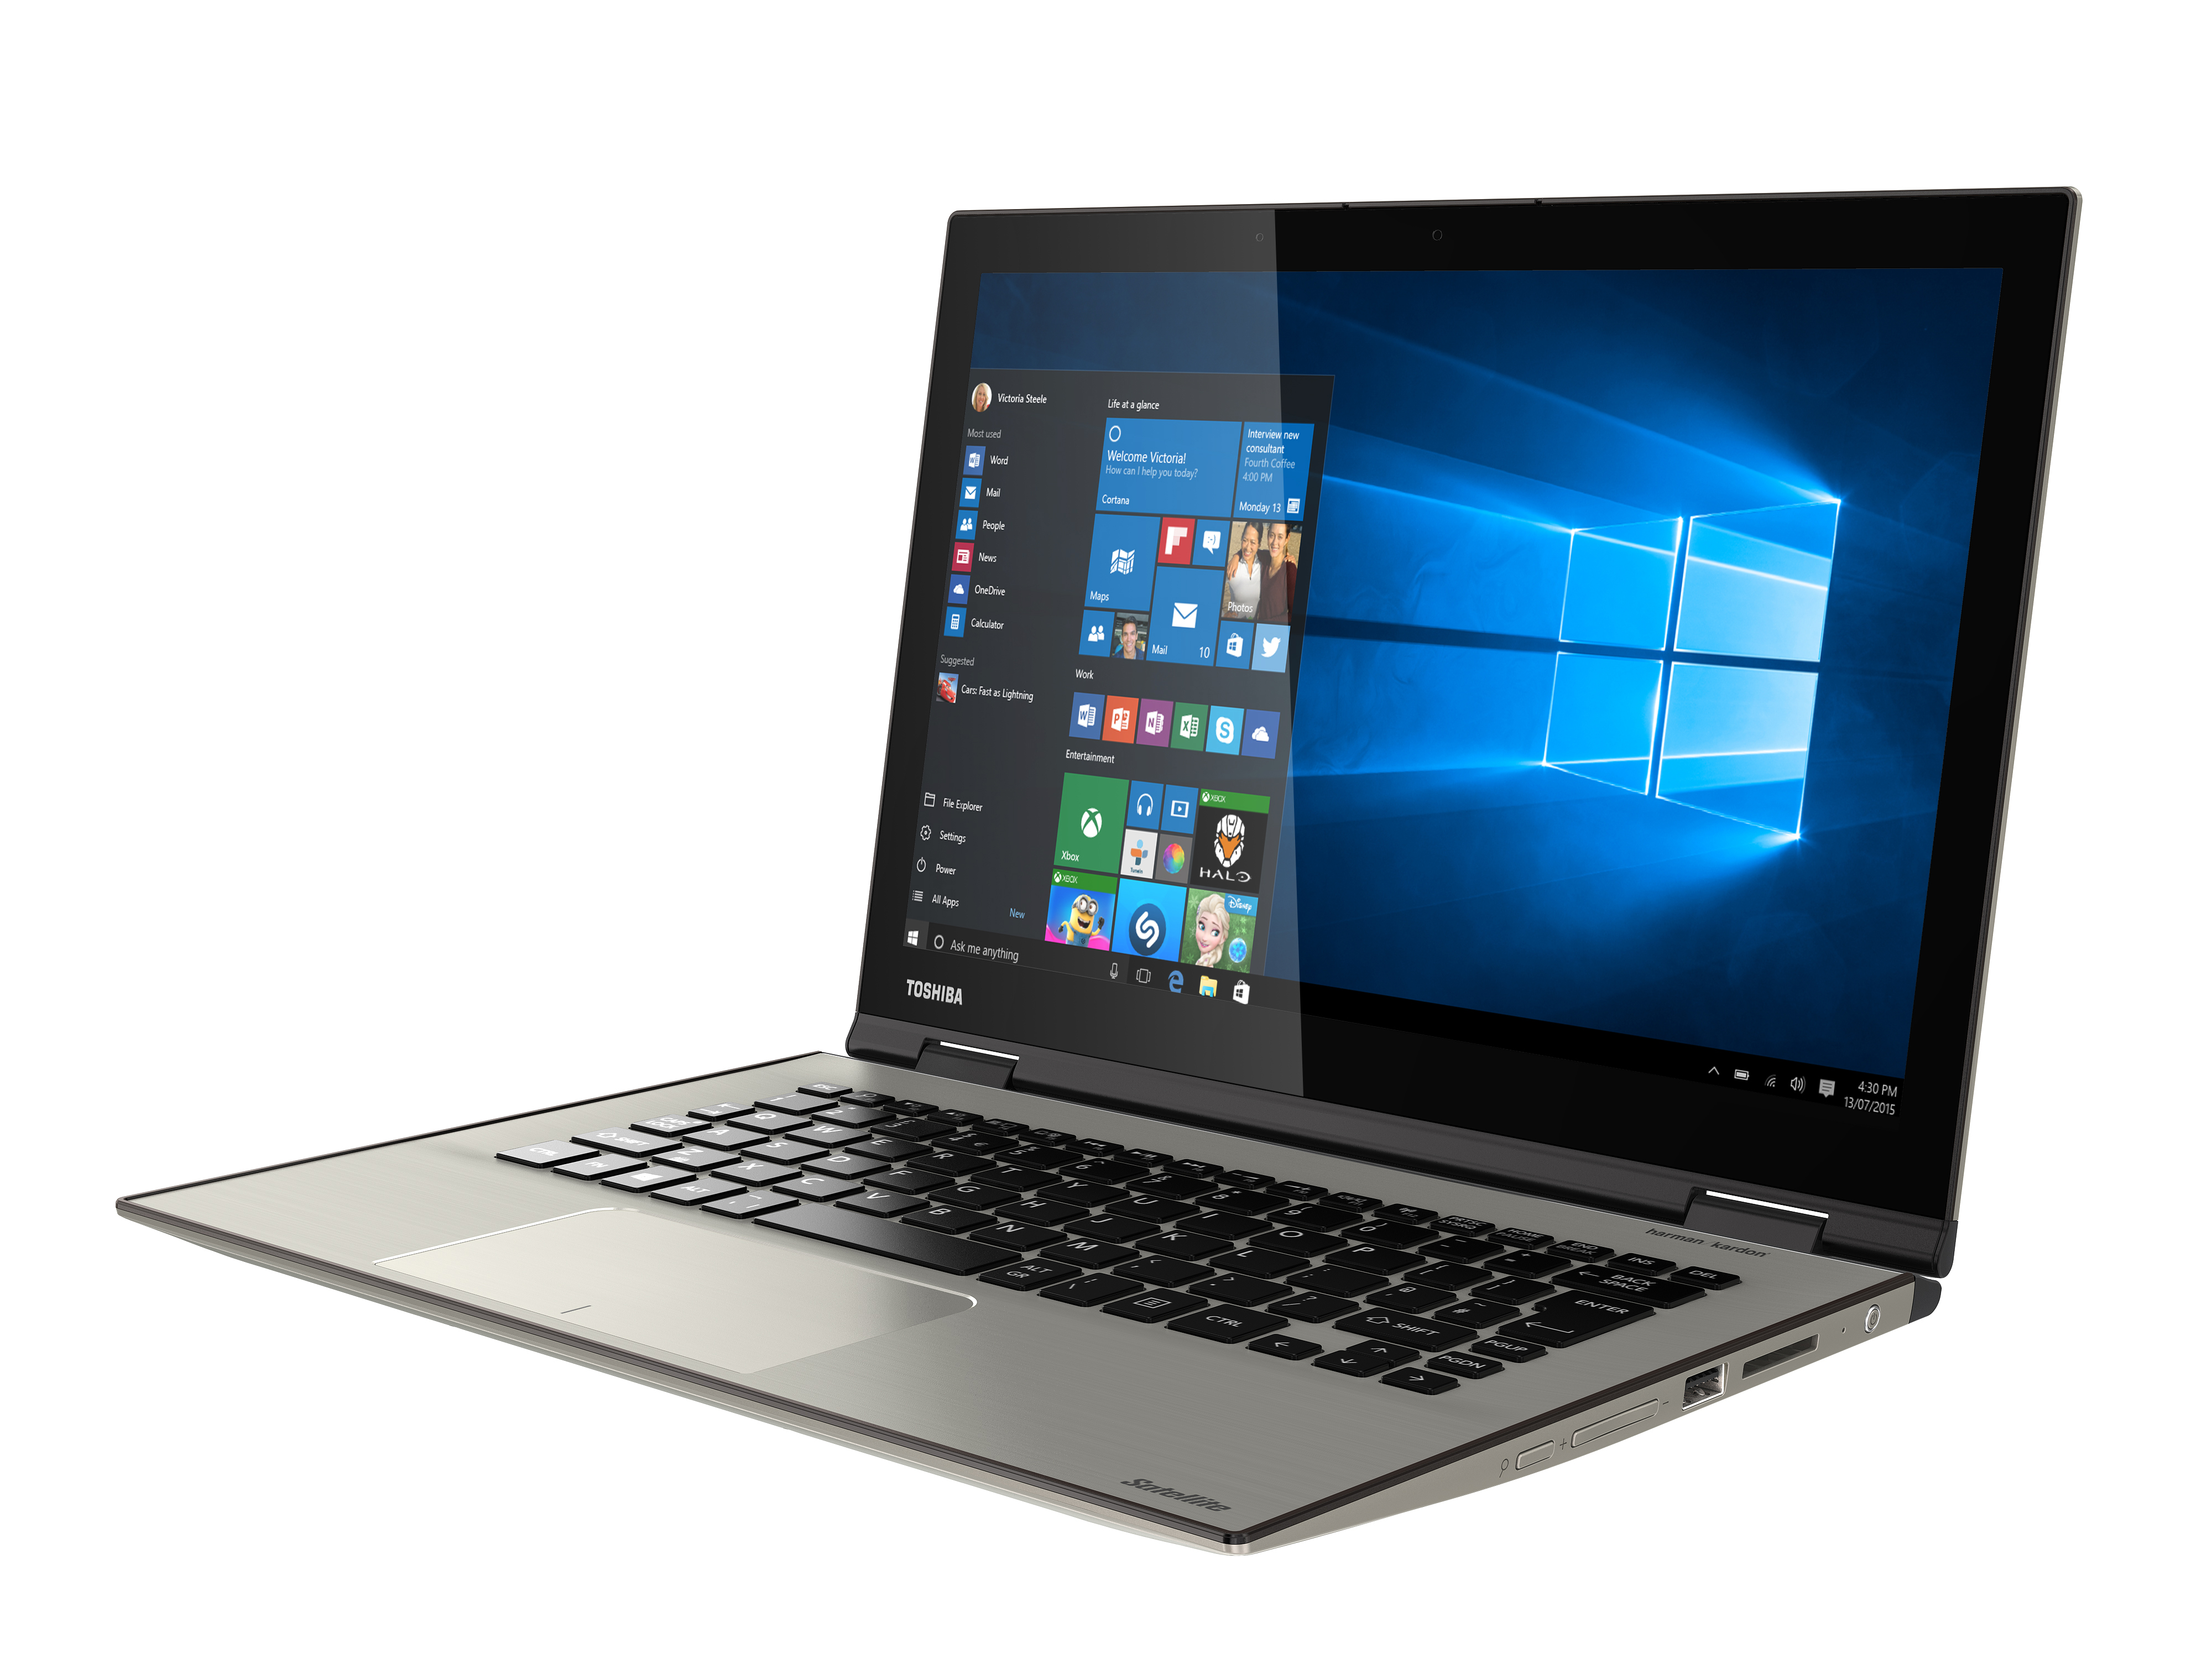 What can the Intel Skylake technology bring to the budget notebook